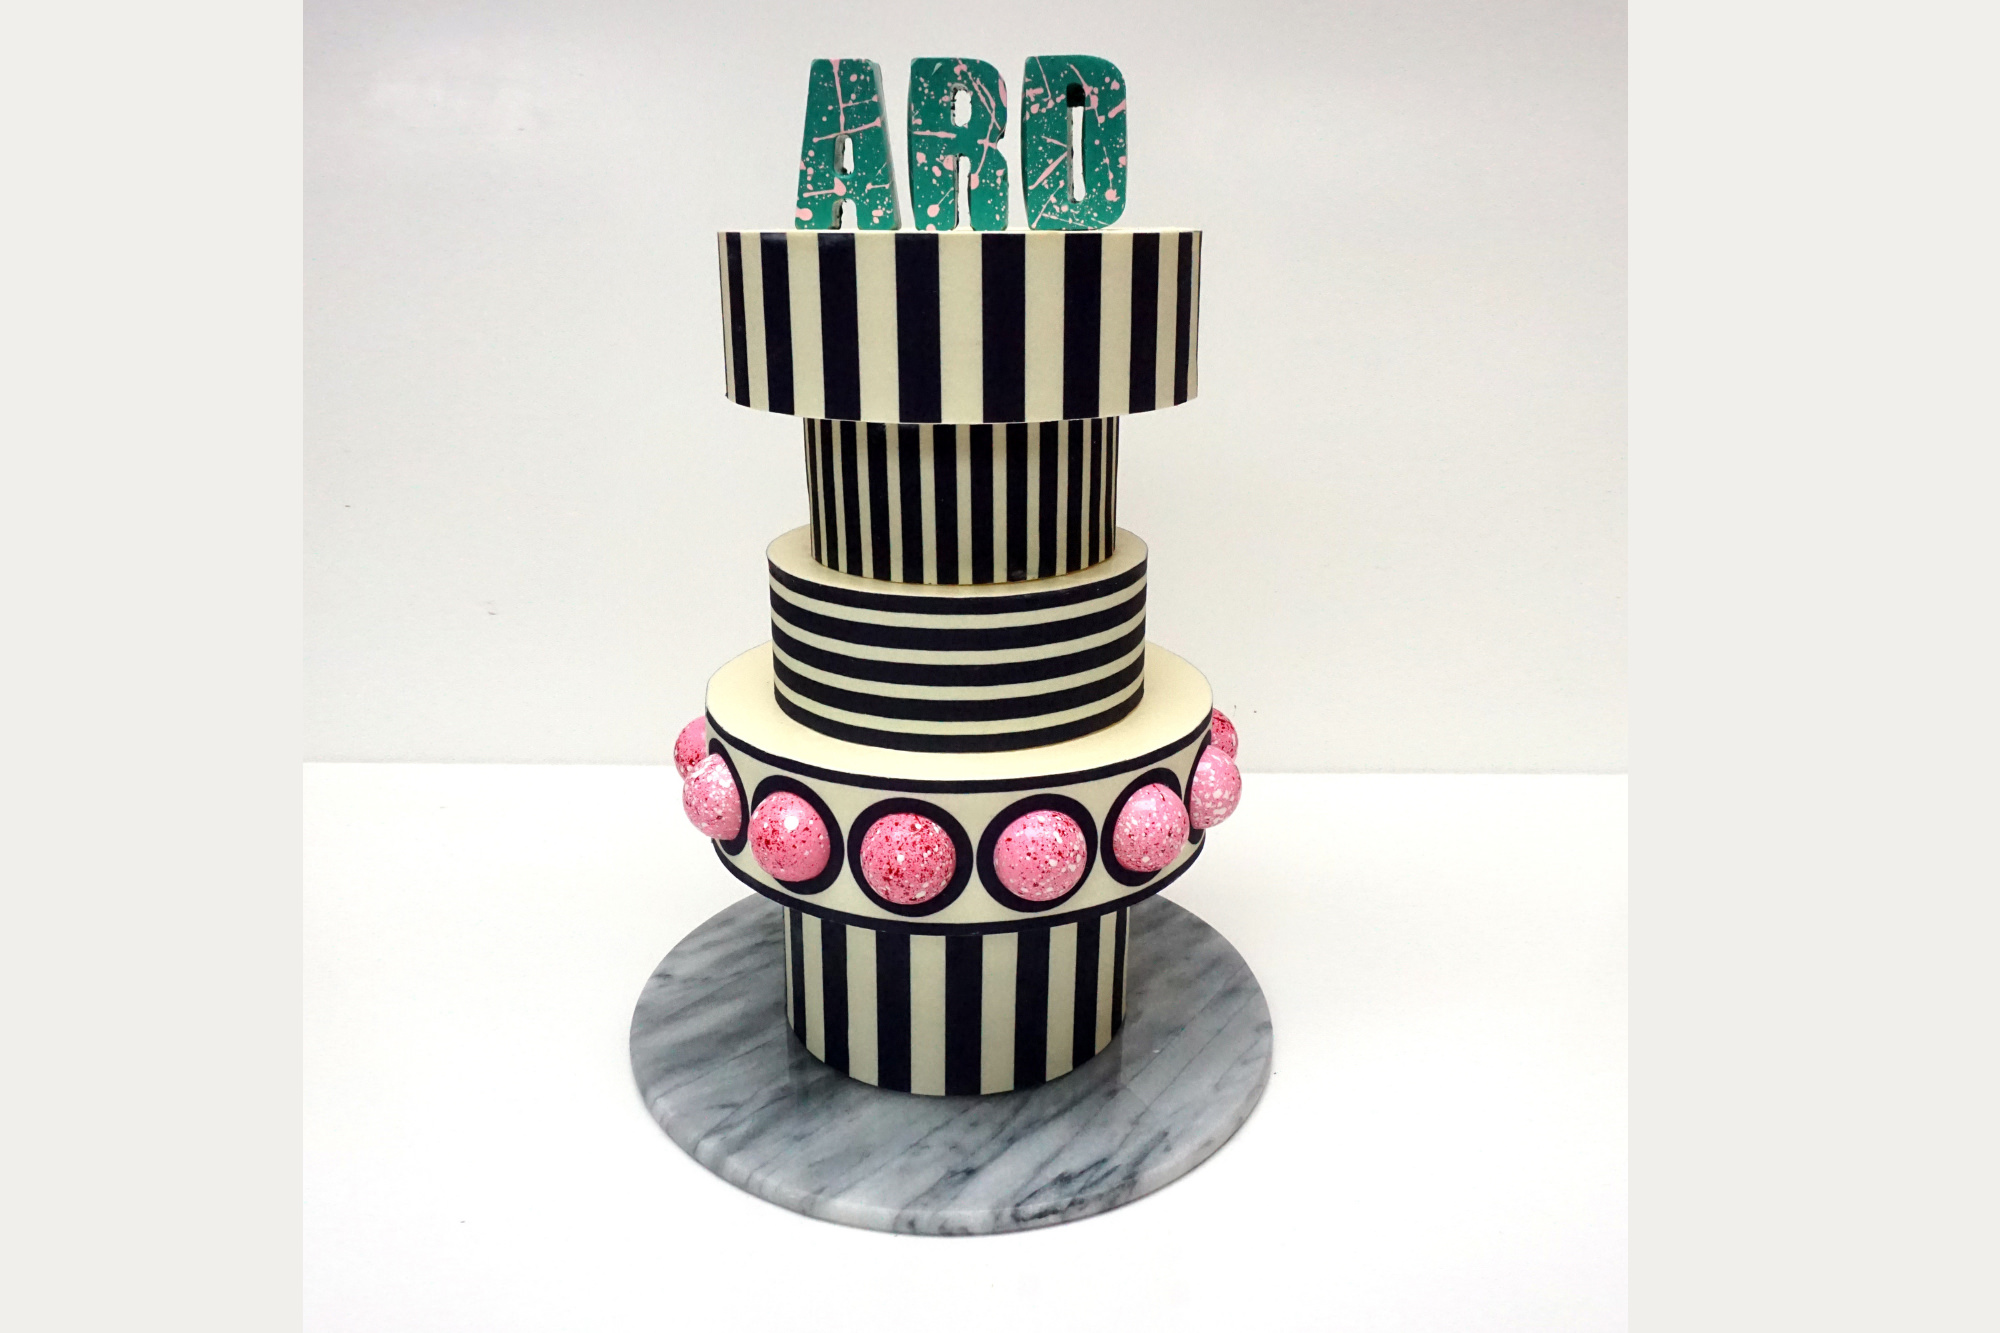 Ard Bakery - design led wedding cakes London